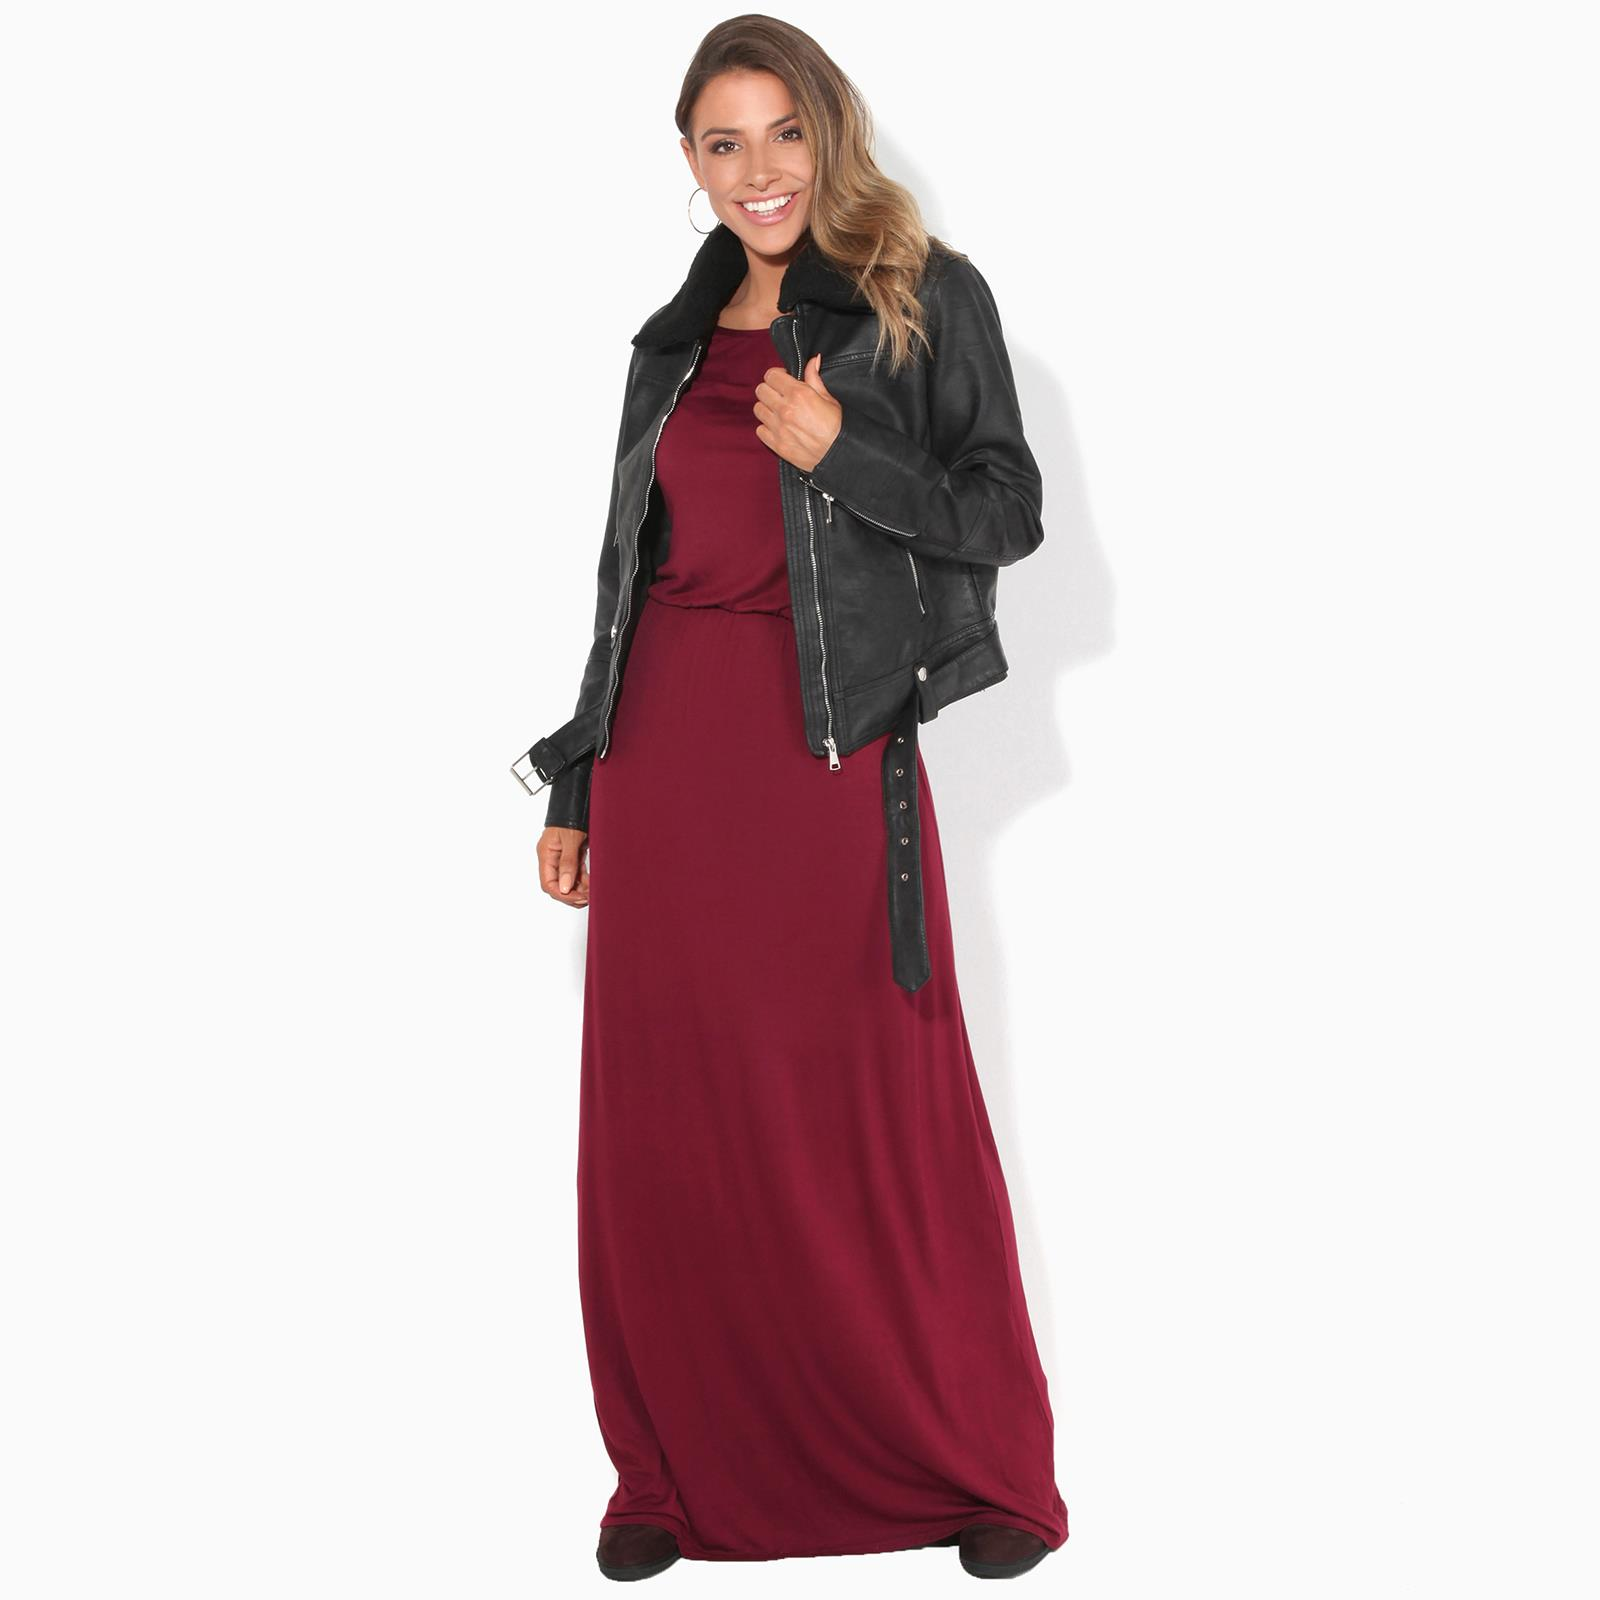 Women-Winter-Dress-Ladies-Plain-Maxi-Crew-Neck-Stretch-Loose-Long-Tog-Casual thumbnail 47